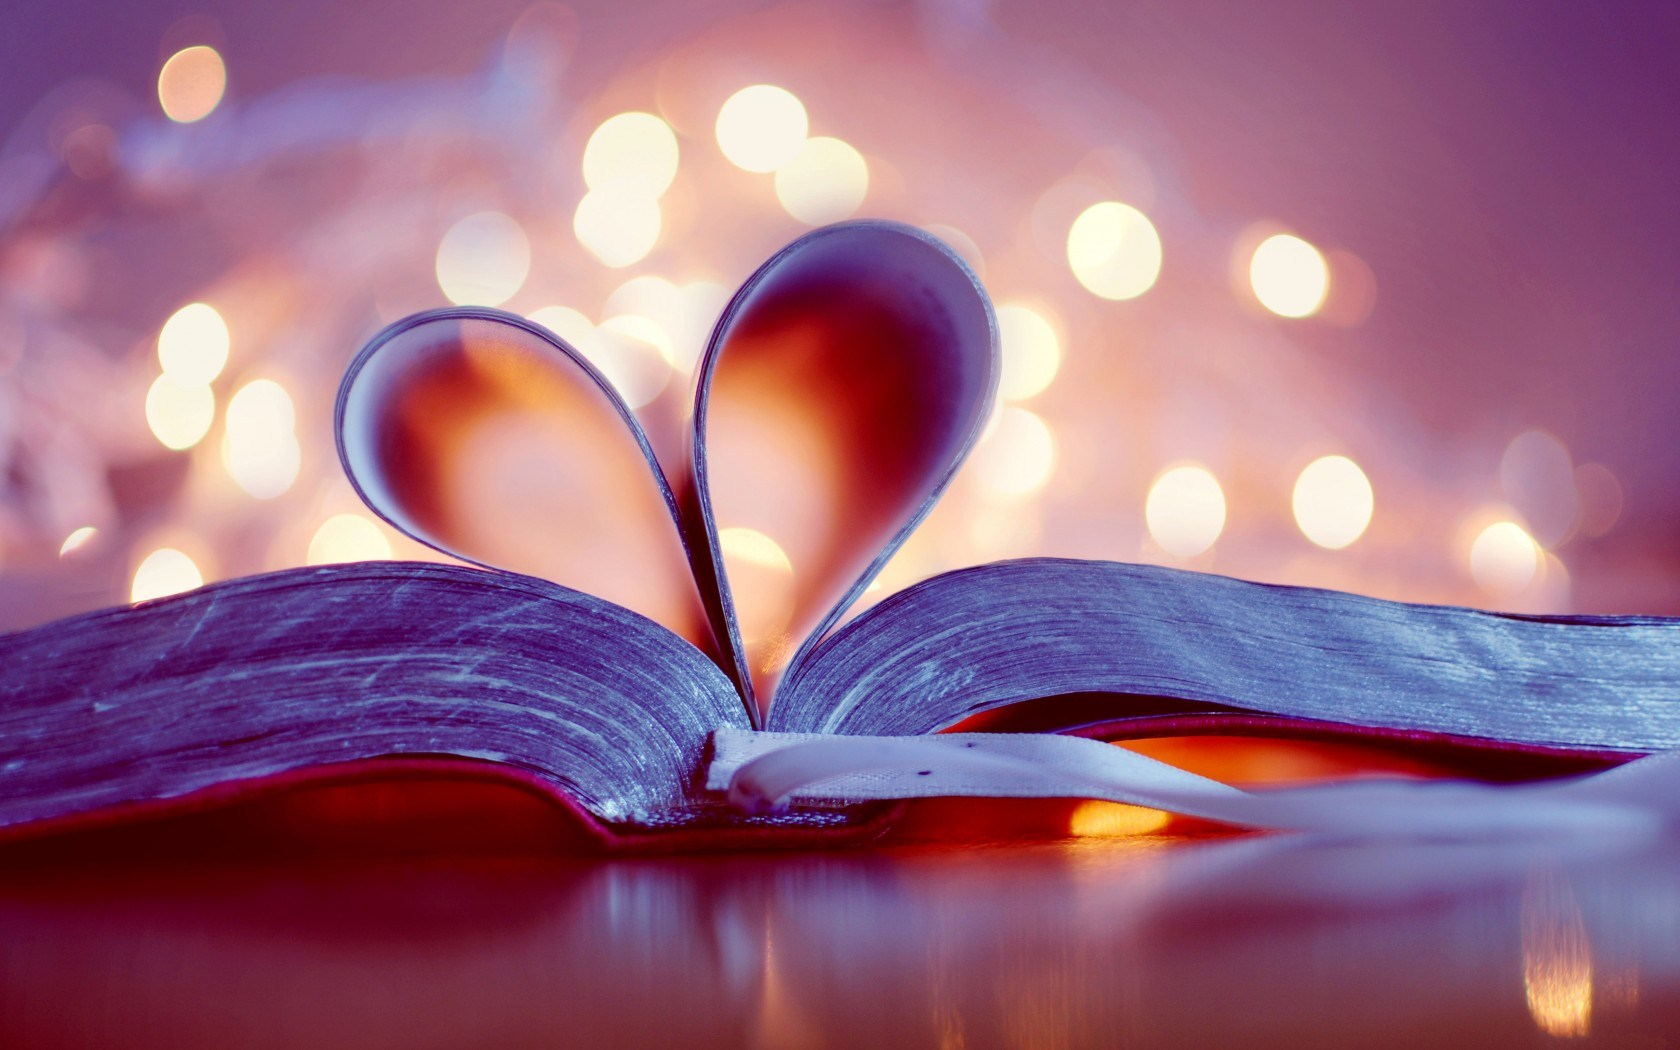 Images Of Love, Heart of Book Pages